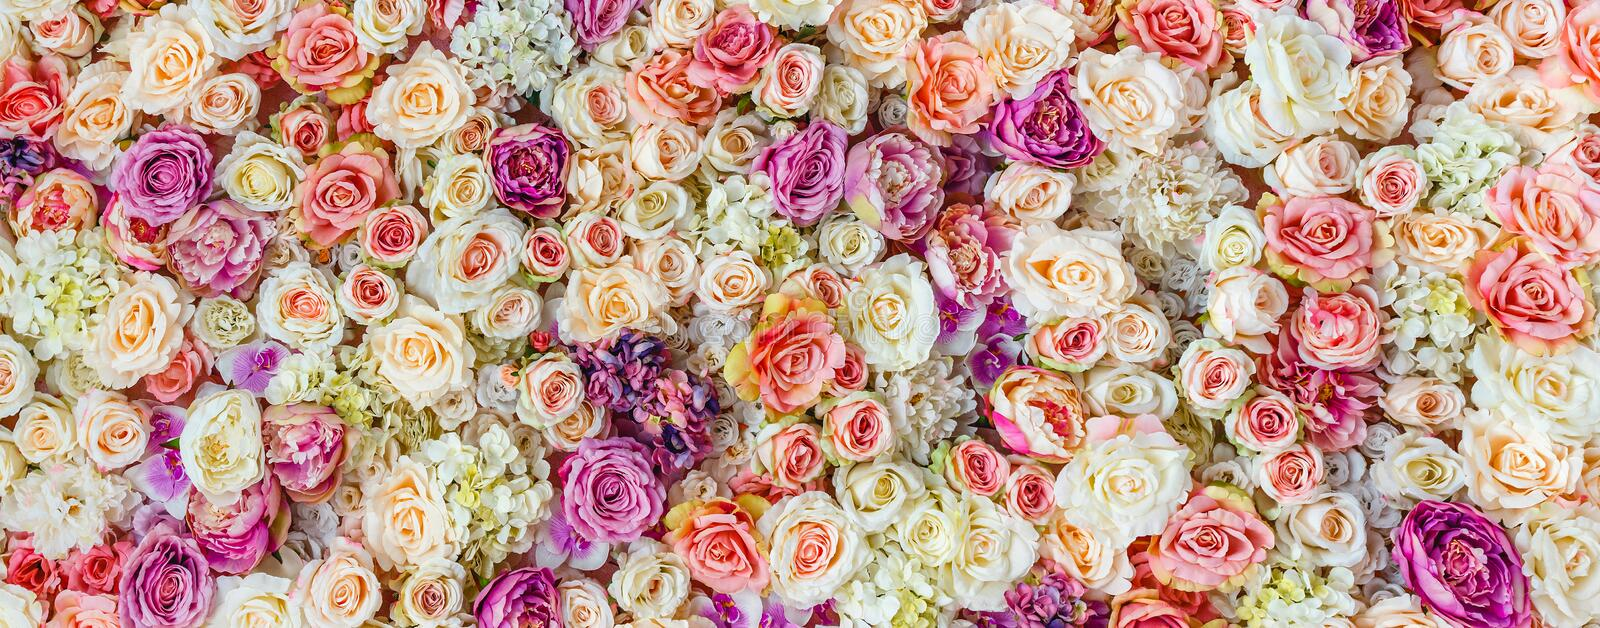 Flowers wall background with amazing red and white roses, Wedding decoration. Hand made stock image